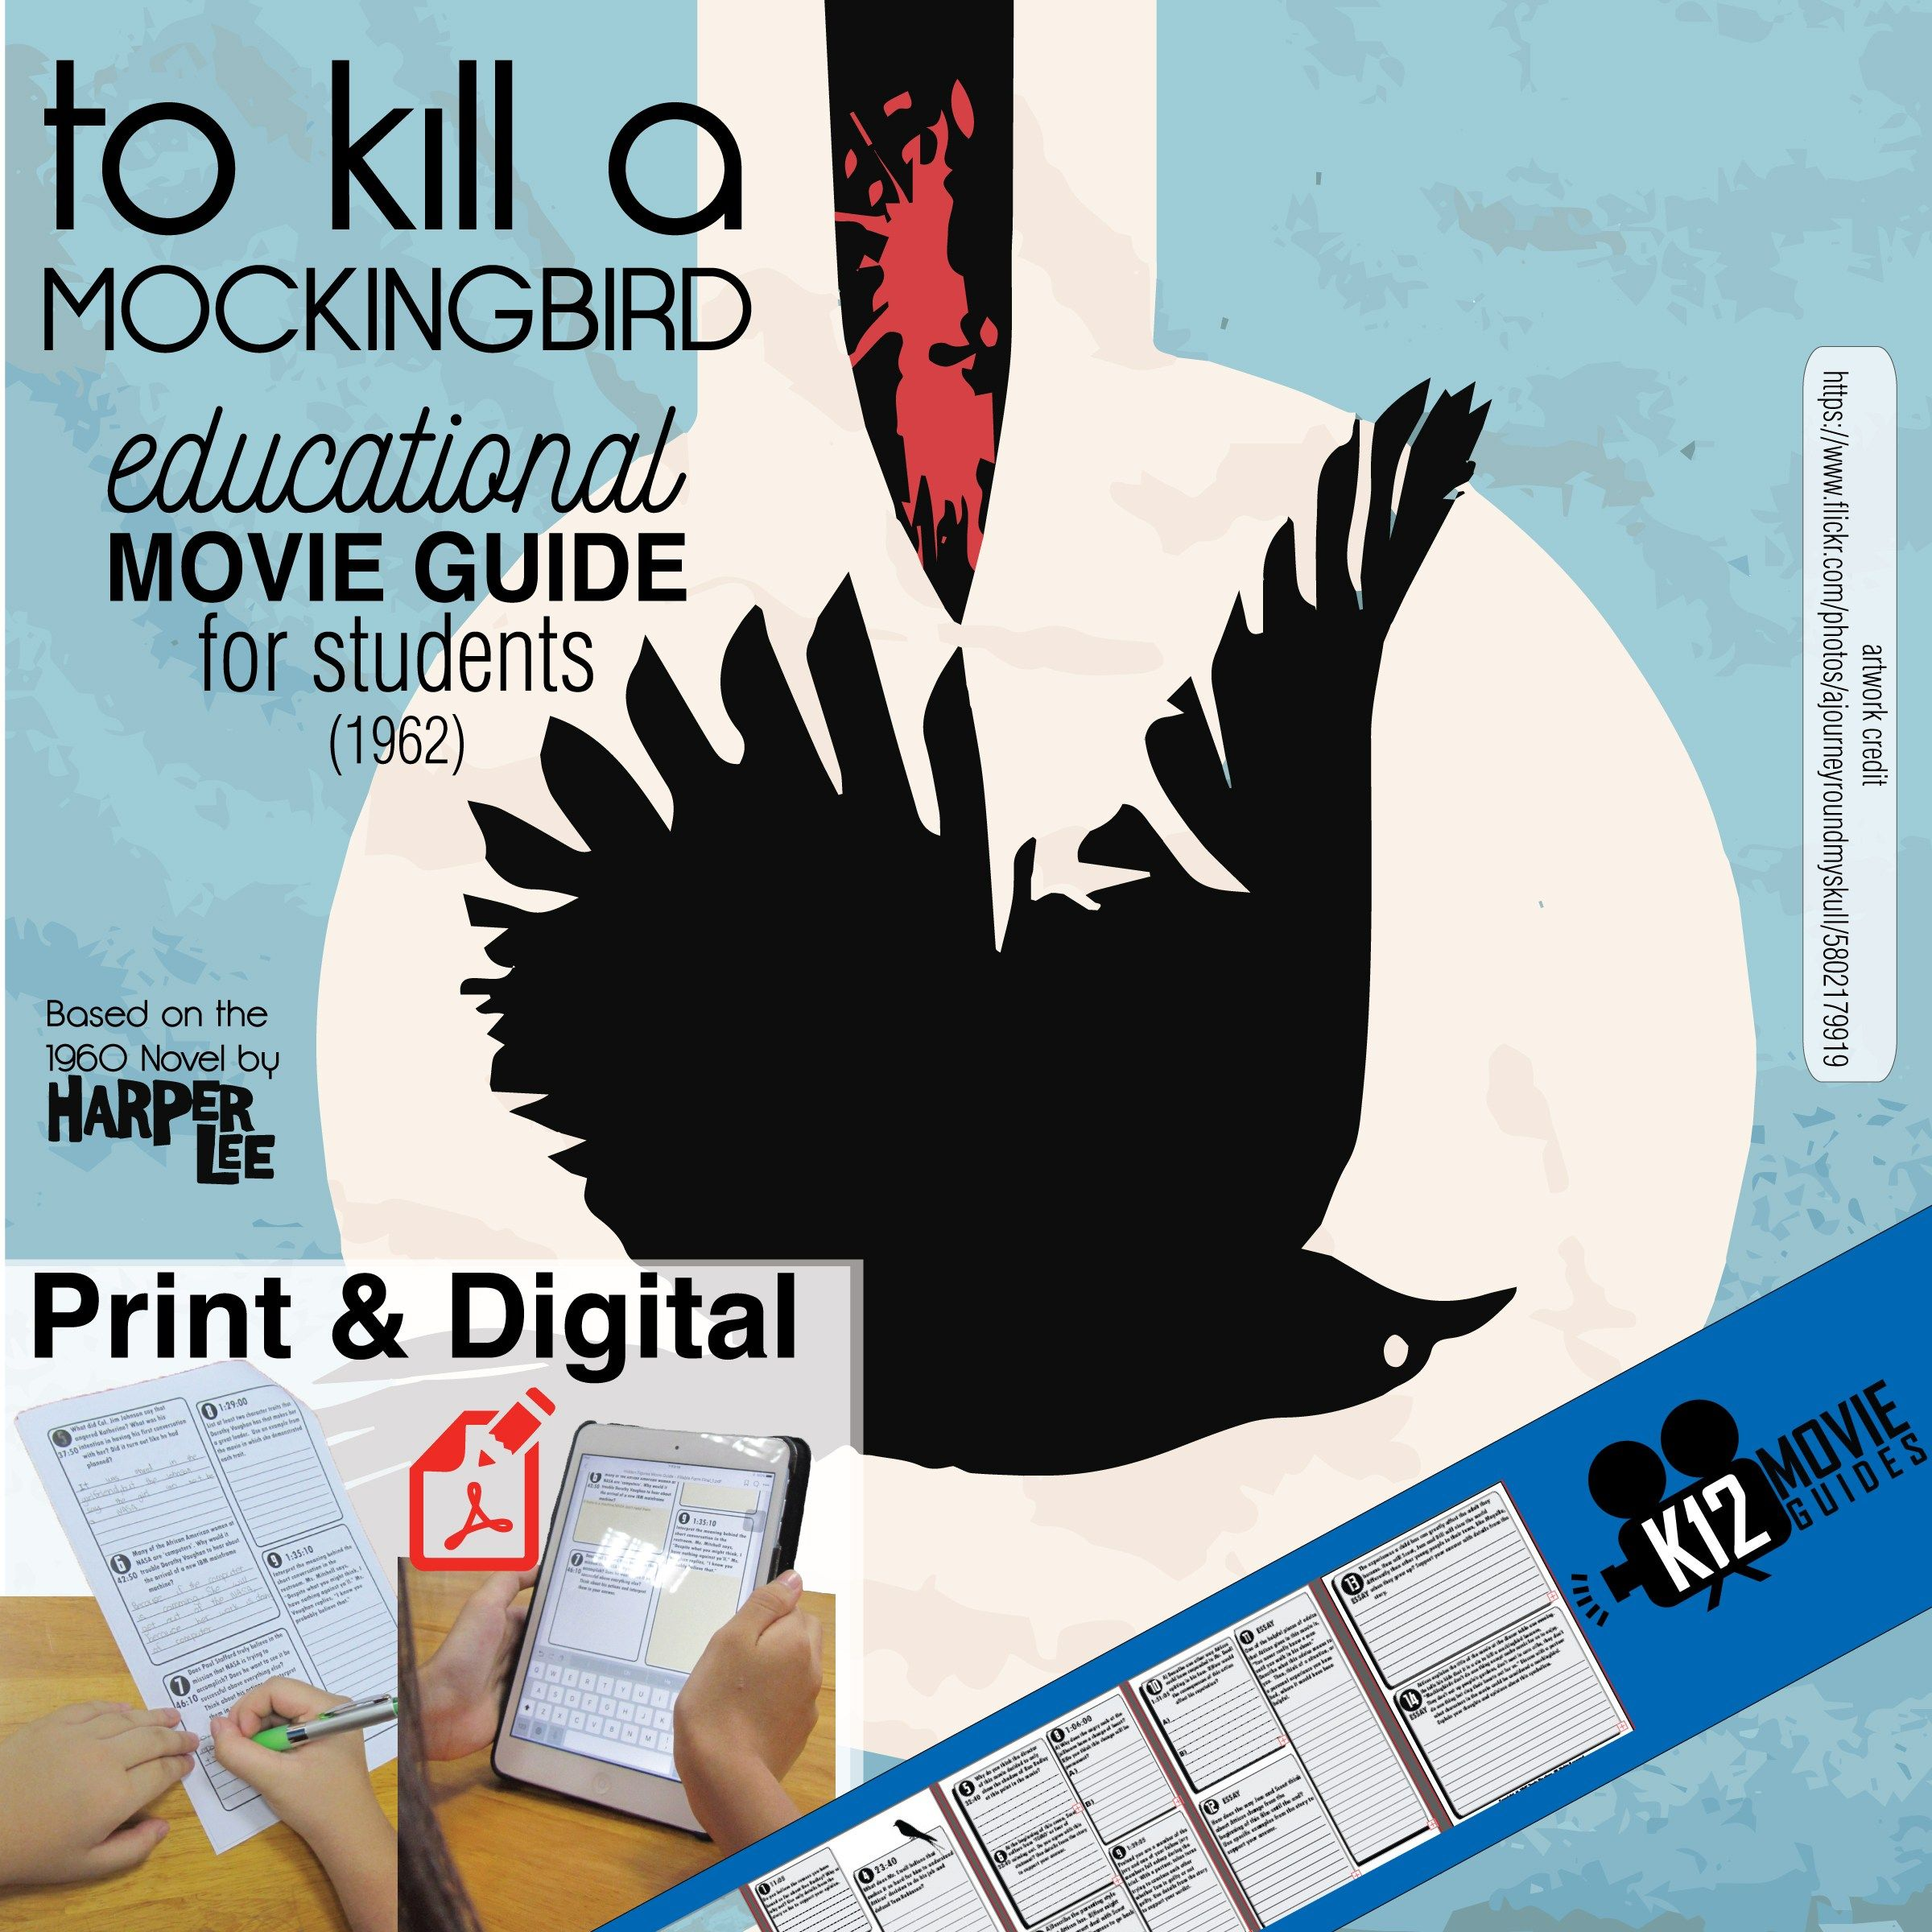 To Kill A Mockingbird Movie Guide